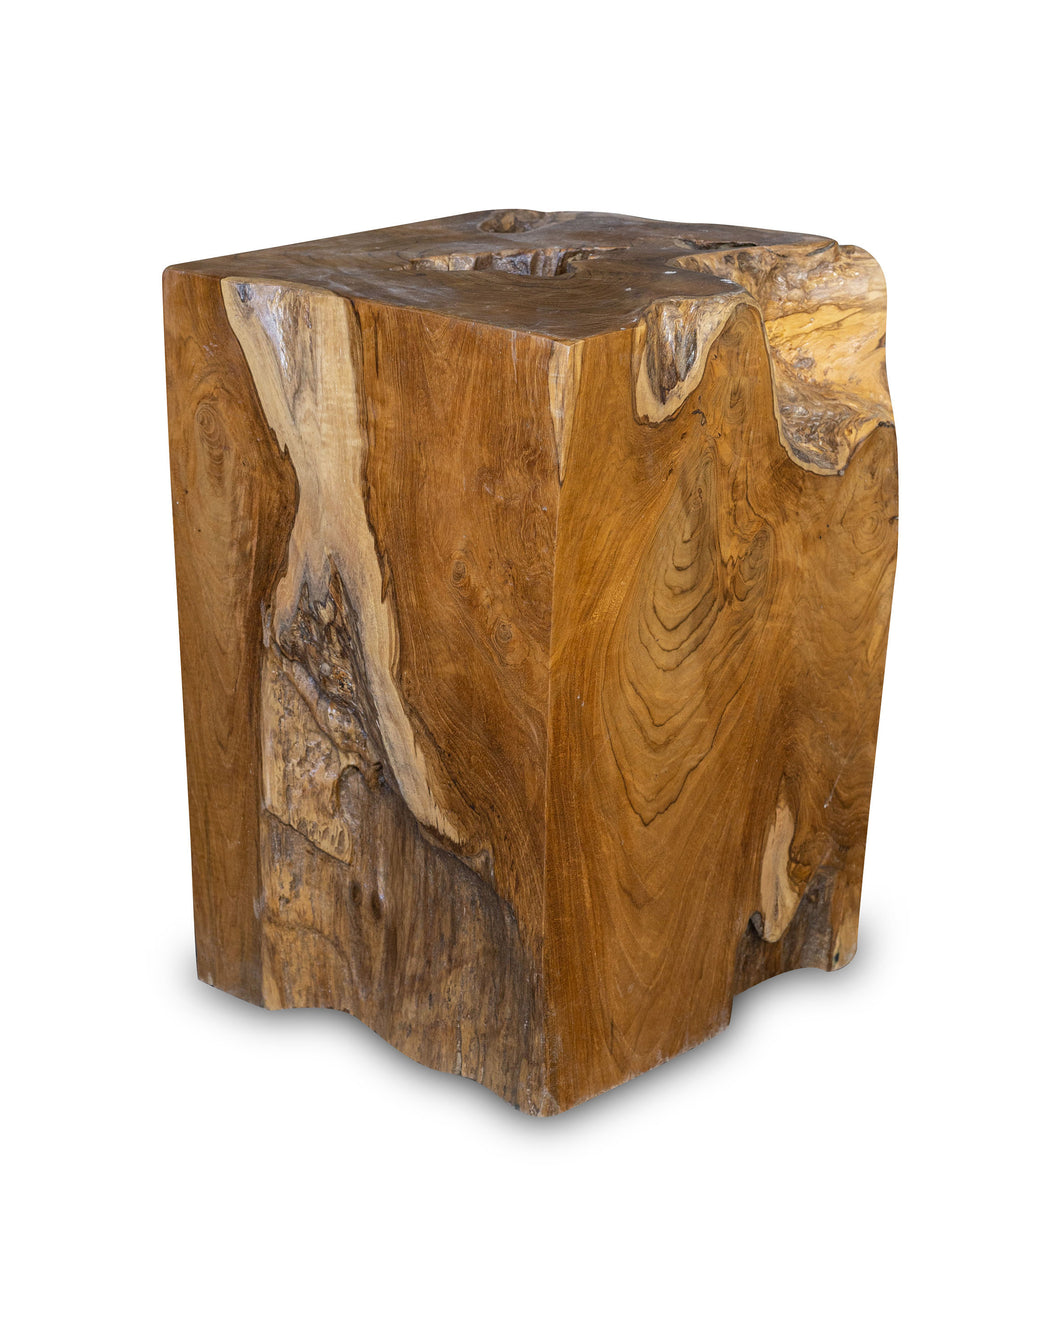 Square Solid Teak Wood Side Table, Natural Tree Stump Stool or End Table #5    17.5